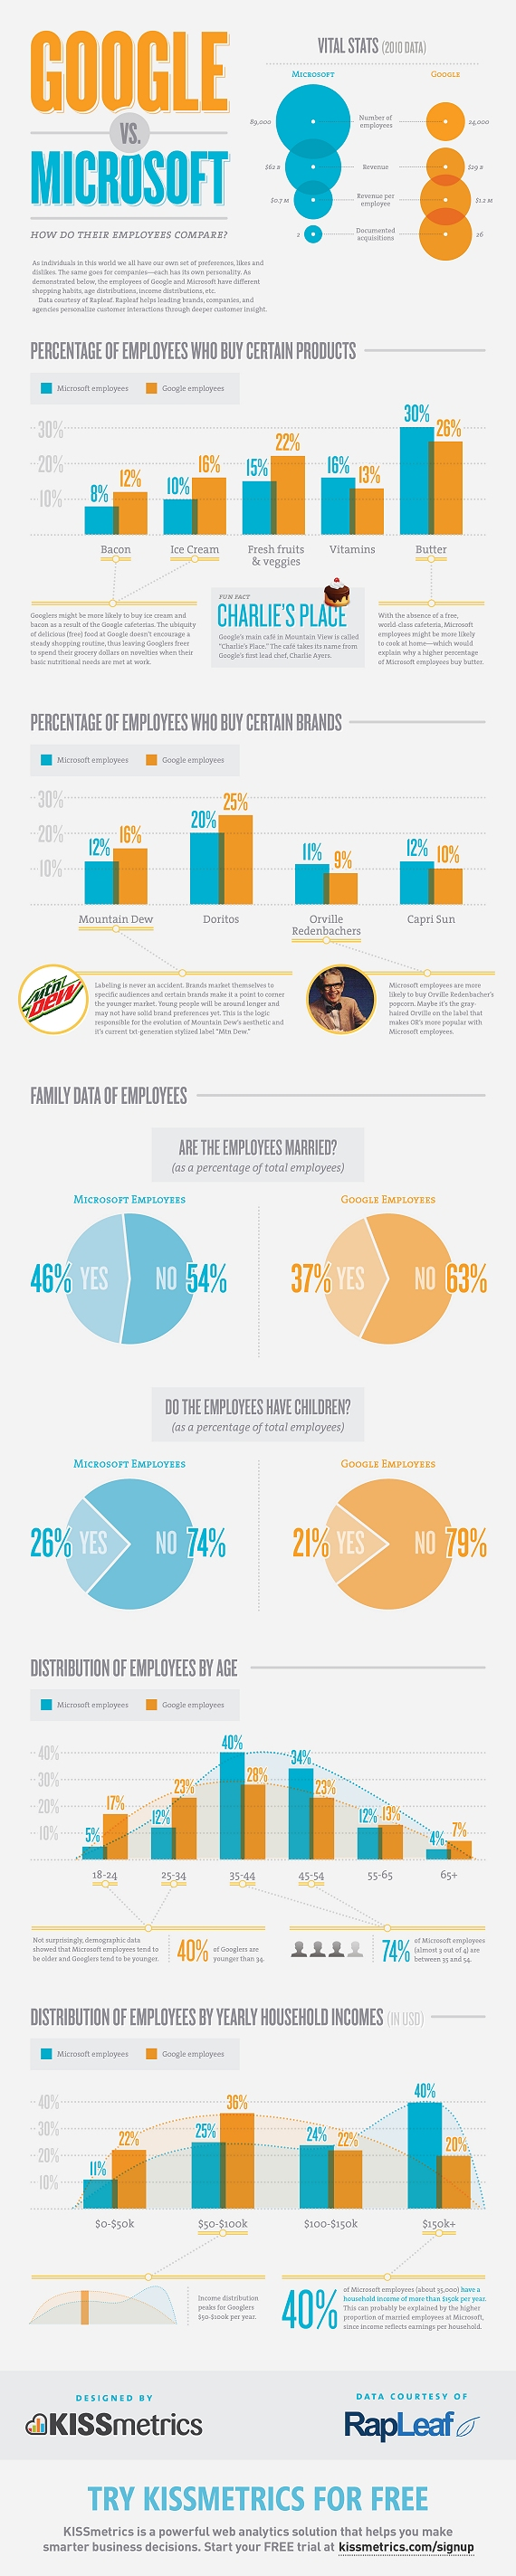 Google vs. Microsoft: How Do Their Employees Compare